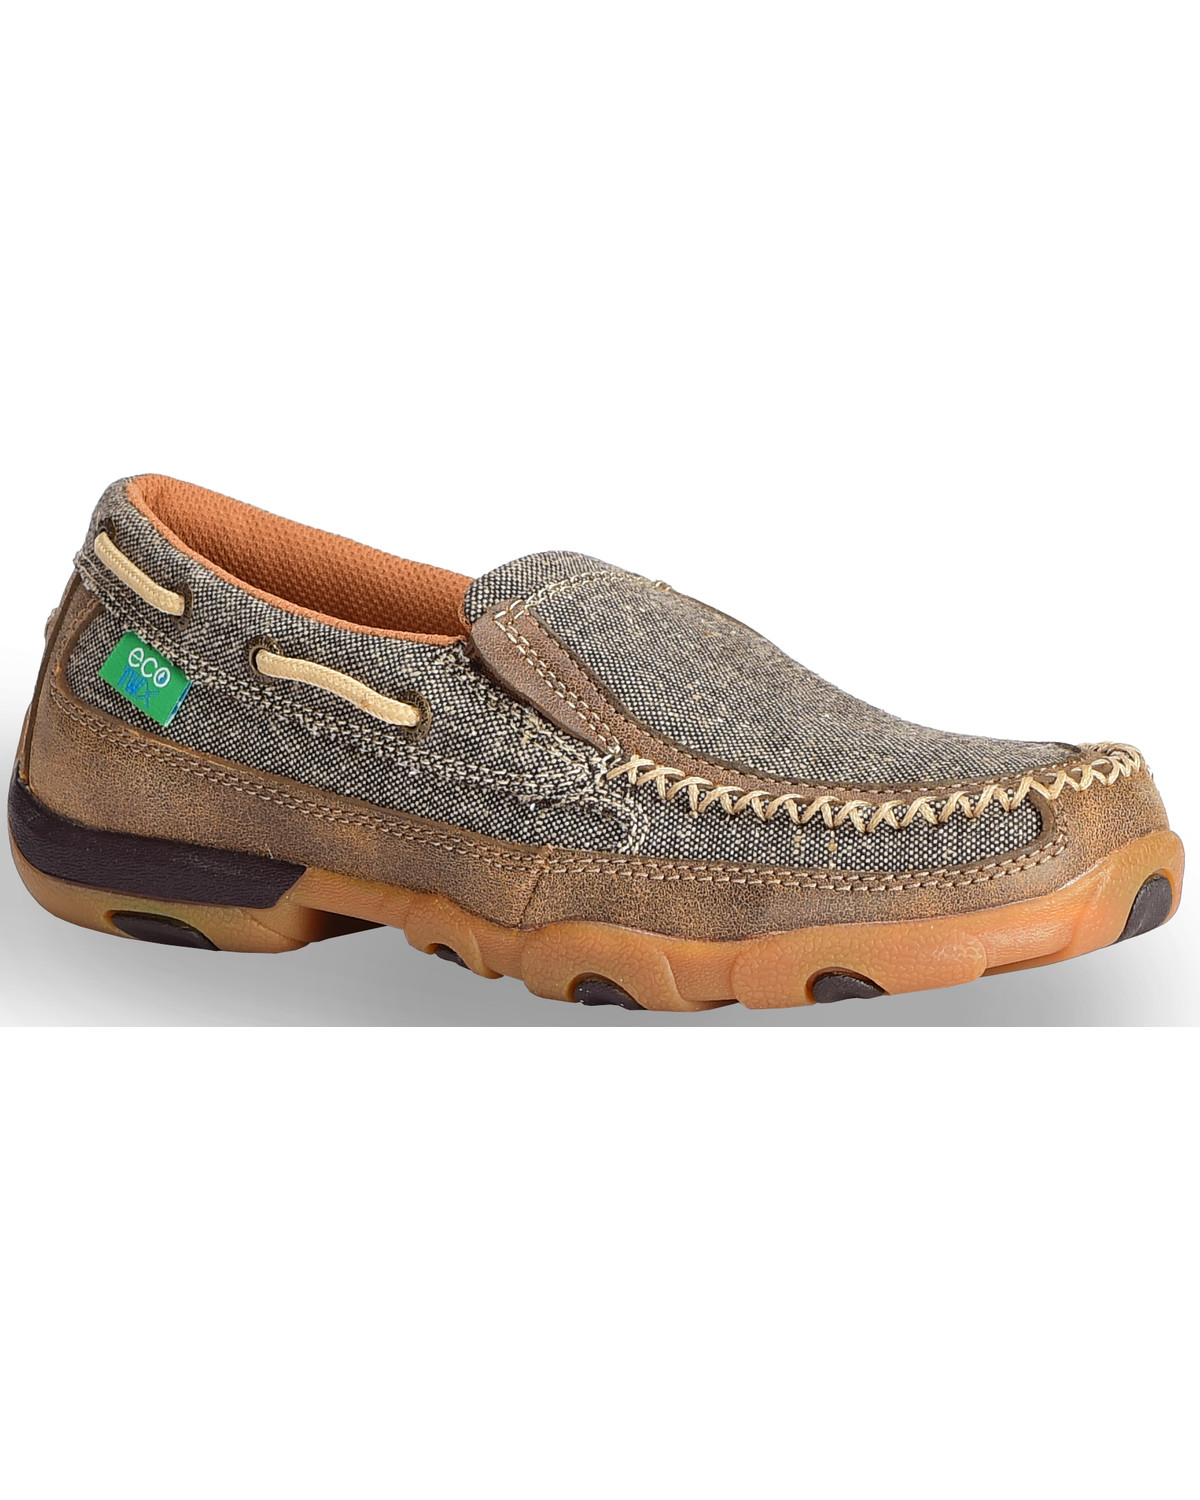 c463ca03b18f Twisted X Women s ECO TWX Slip-On Driving Moccasins - Moc Toe